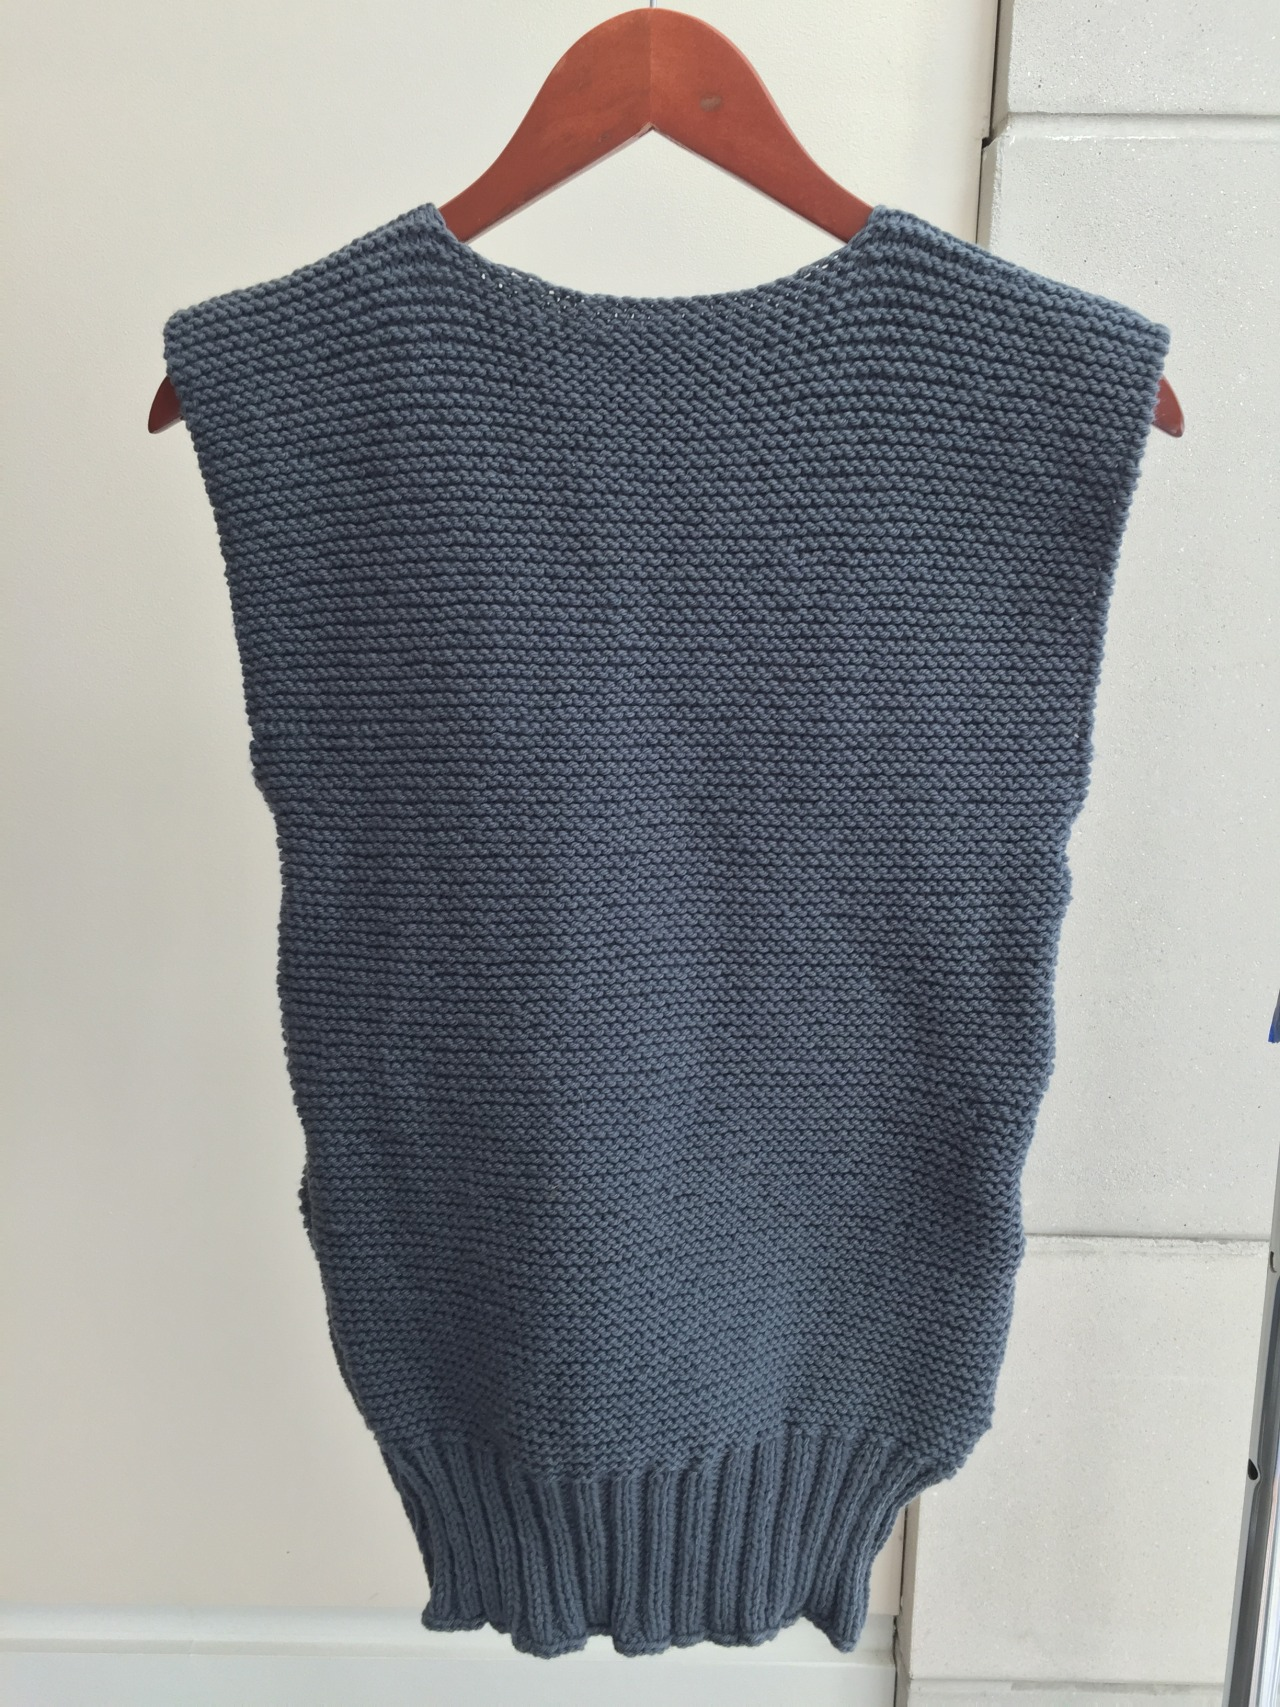 a4989c838 Knitting for Victory  American Defense Knitting — Knitted Sleeveless ...